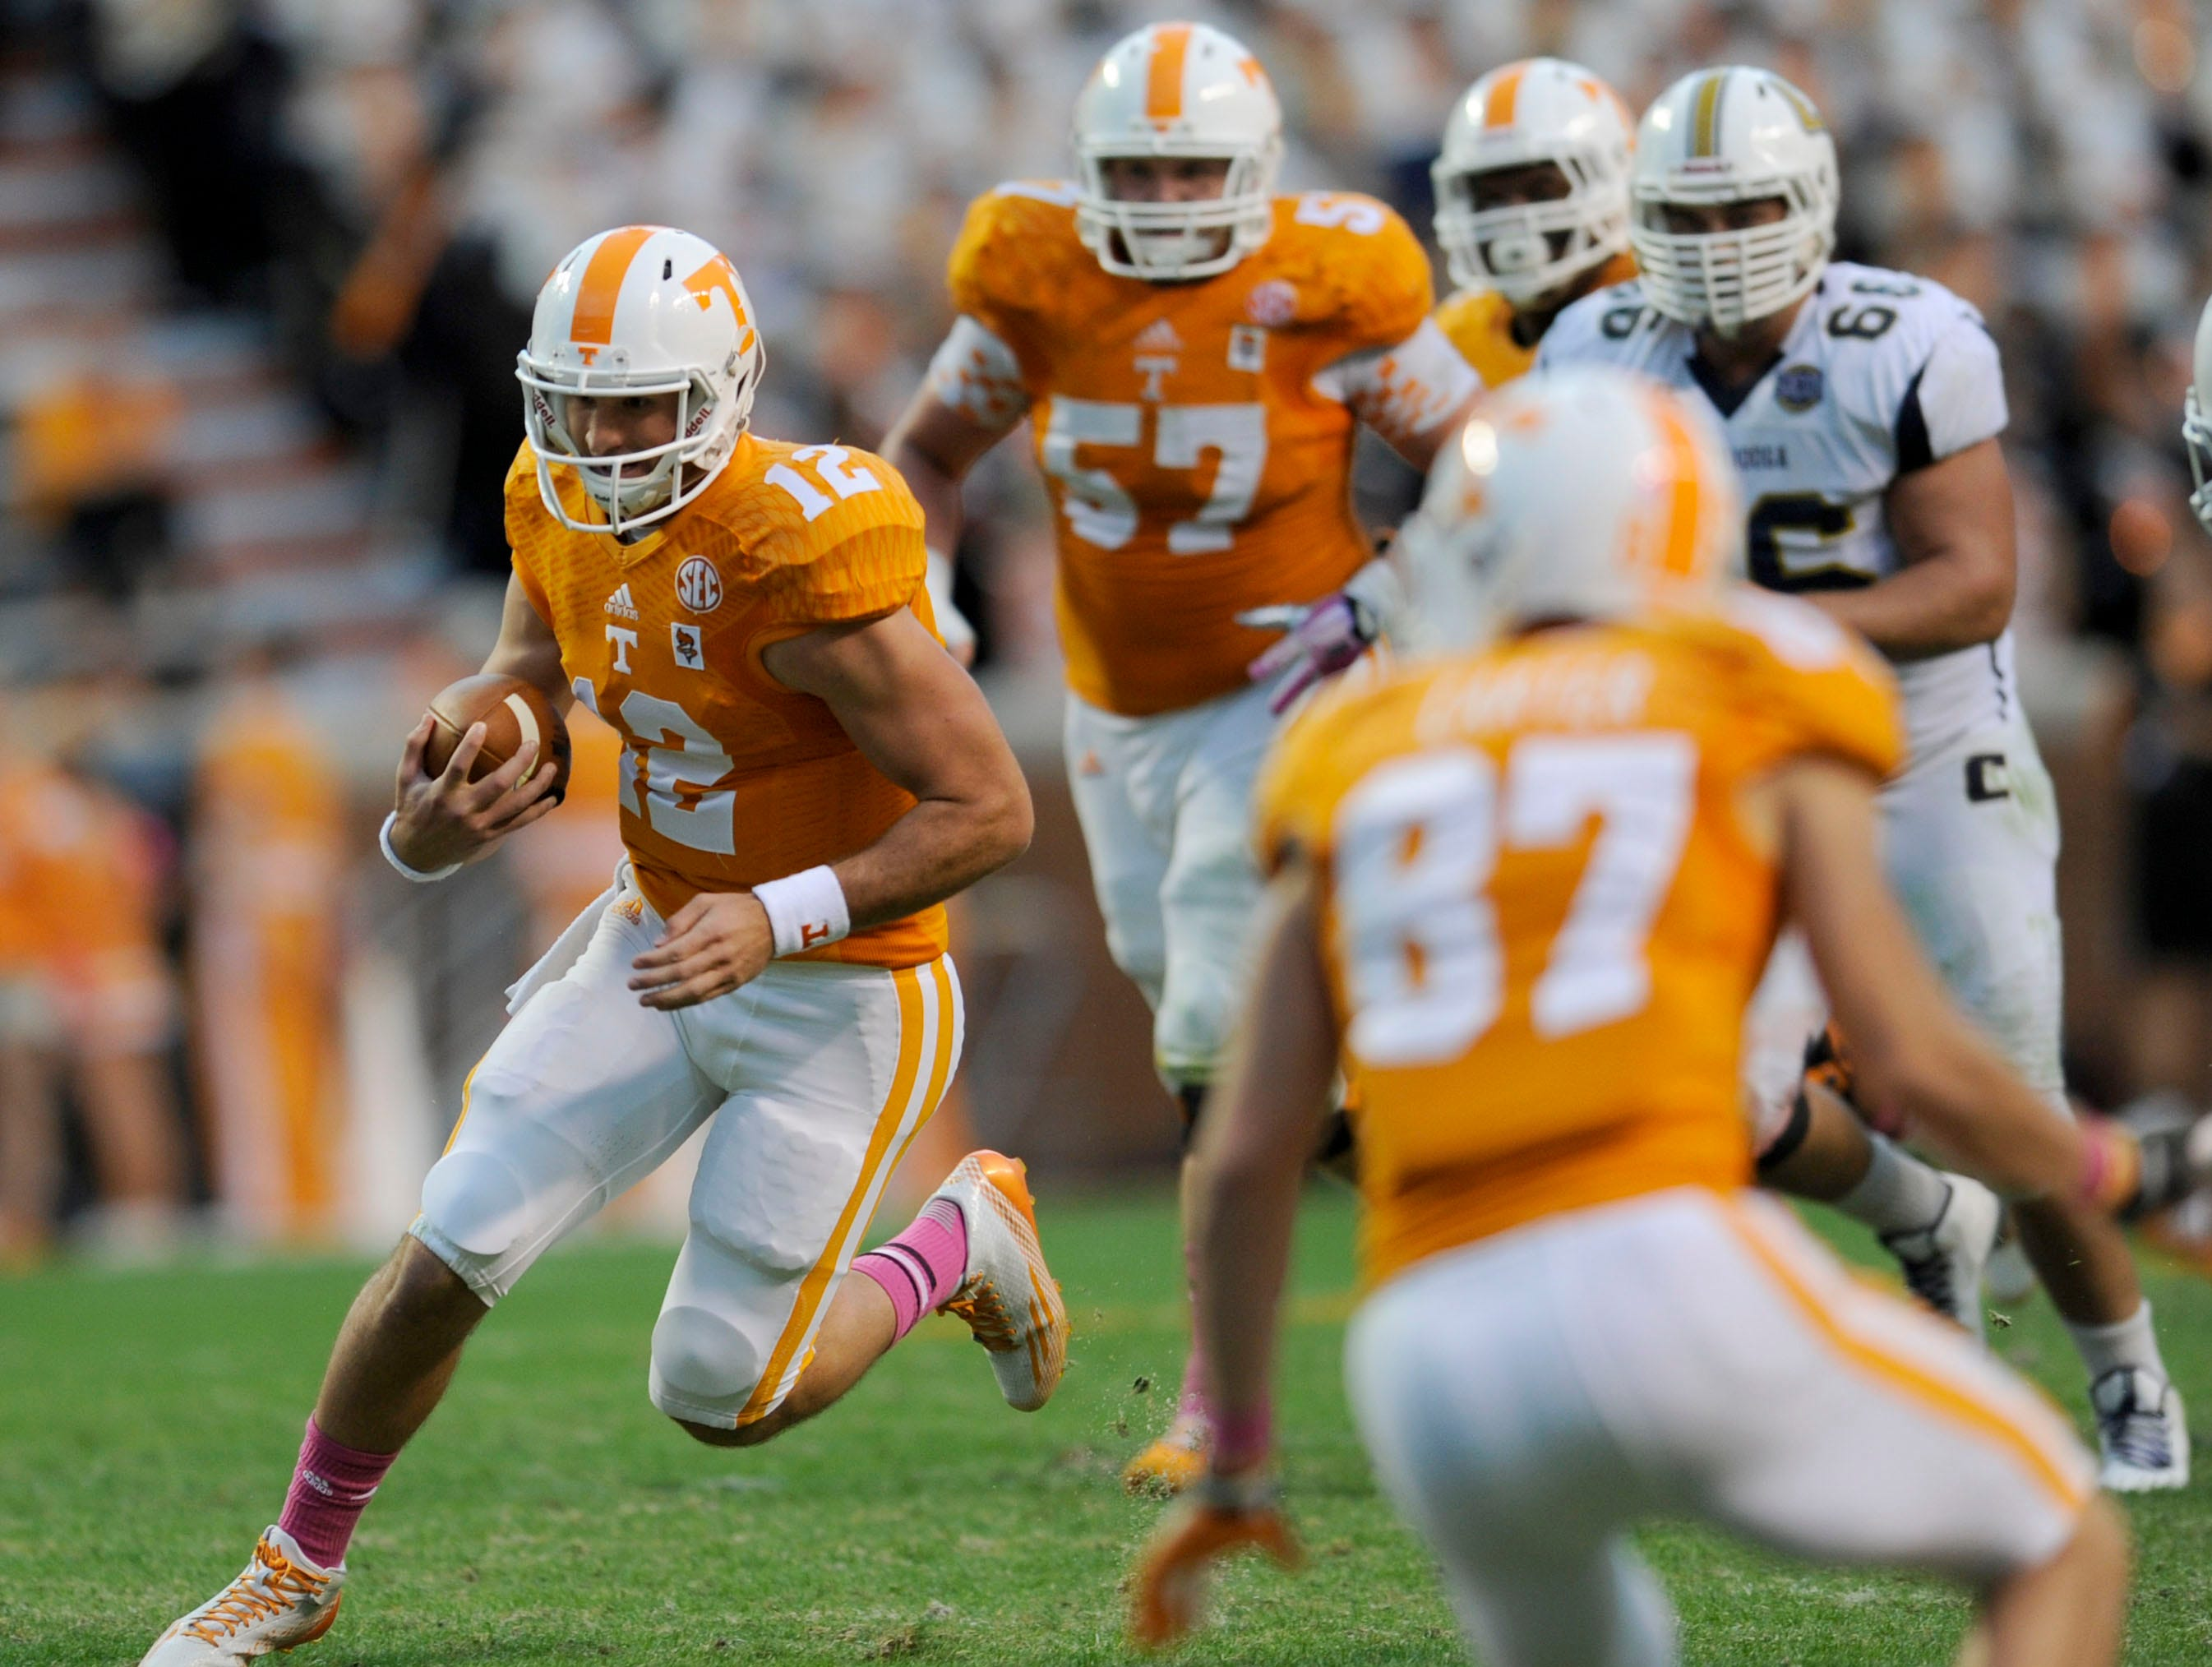 Tennessee quarterback Nathan Peterman (12) runs the ball during the second half at Neyland Stadium on Saturday, Oct. 11, 2014 in Knoxville, Tenn. Tennessee won the game 45-10.